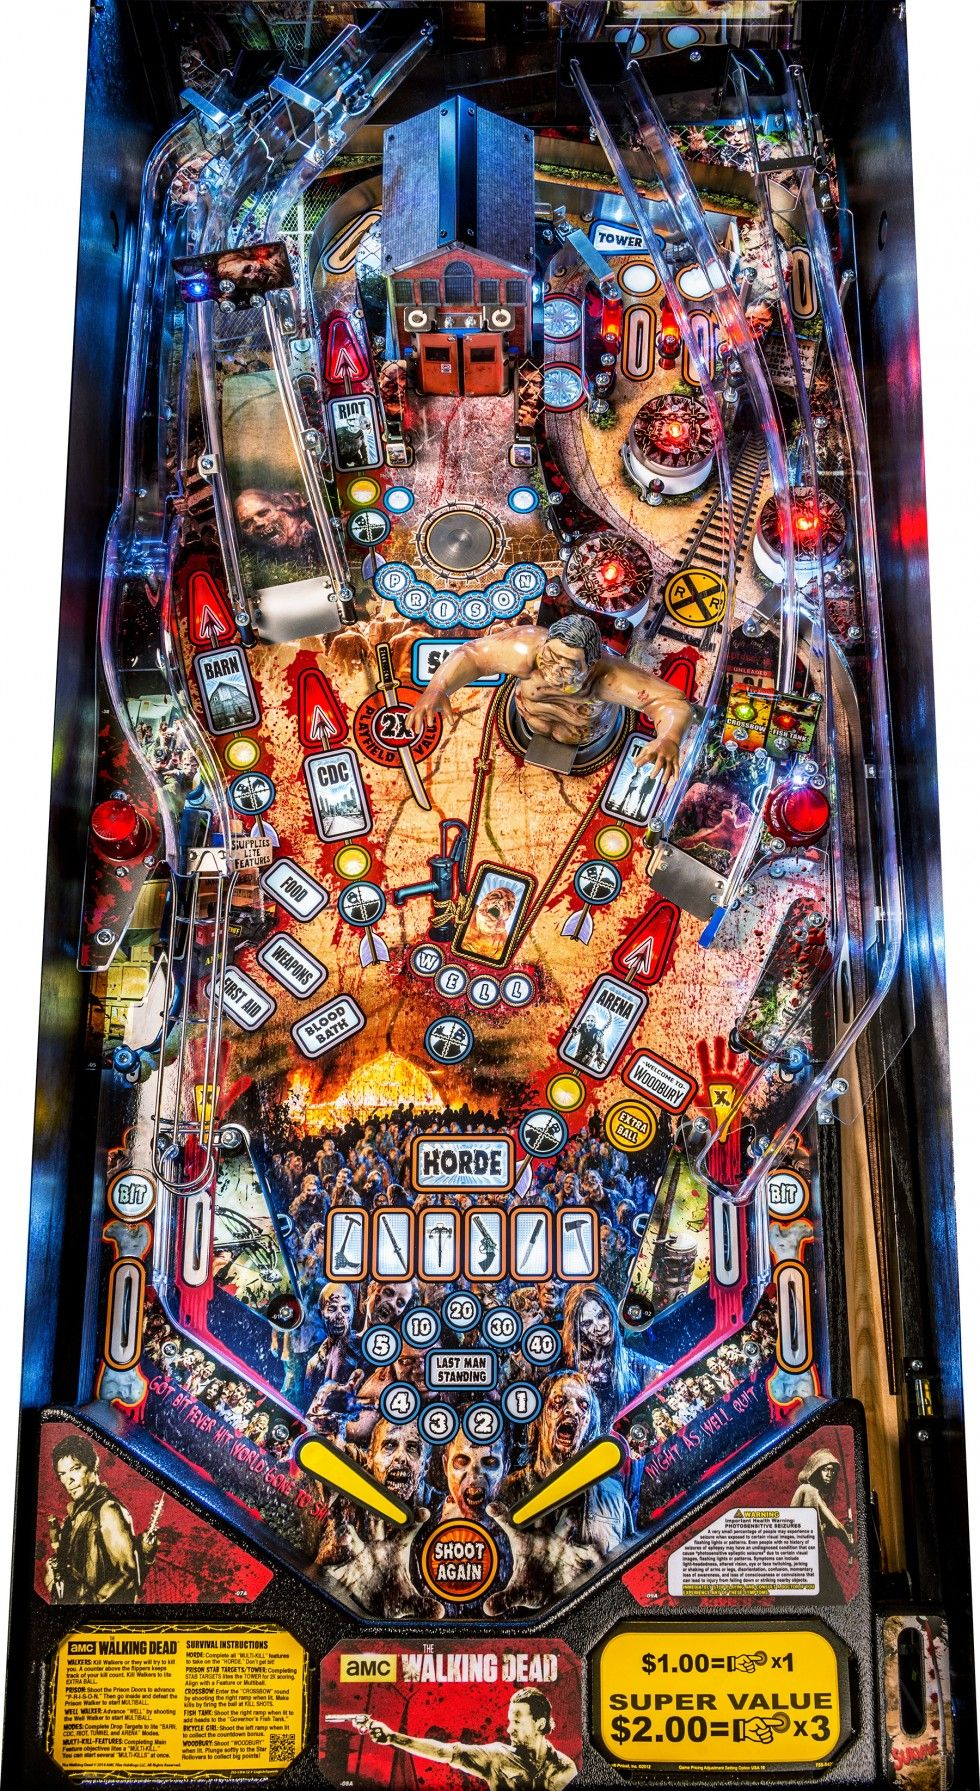 Got Bit Fever Hit The Walking Dead Pinball Shambles Into Game Rooms Pinball Pinball Machines Pinball Art